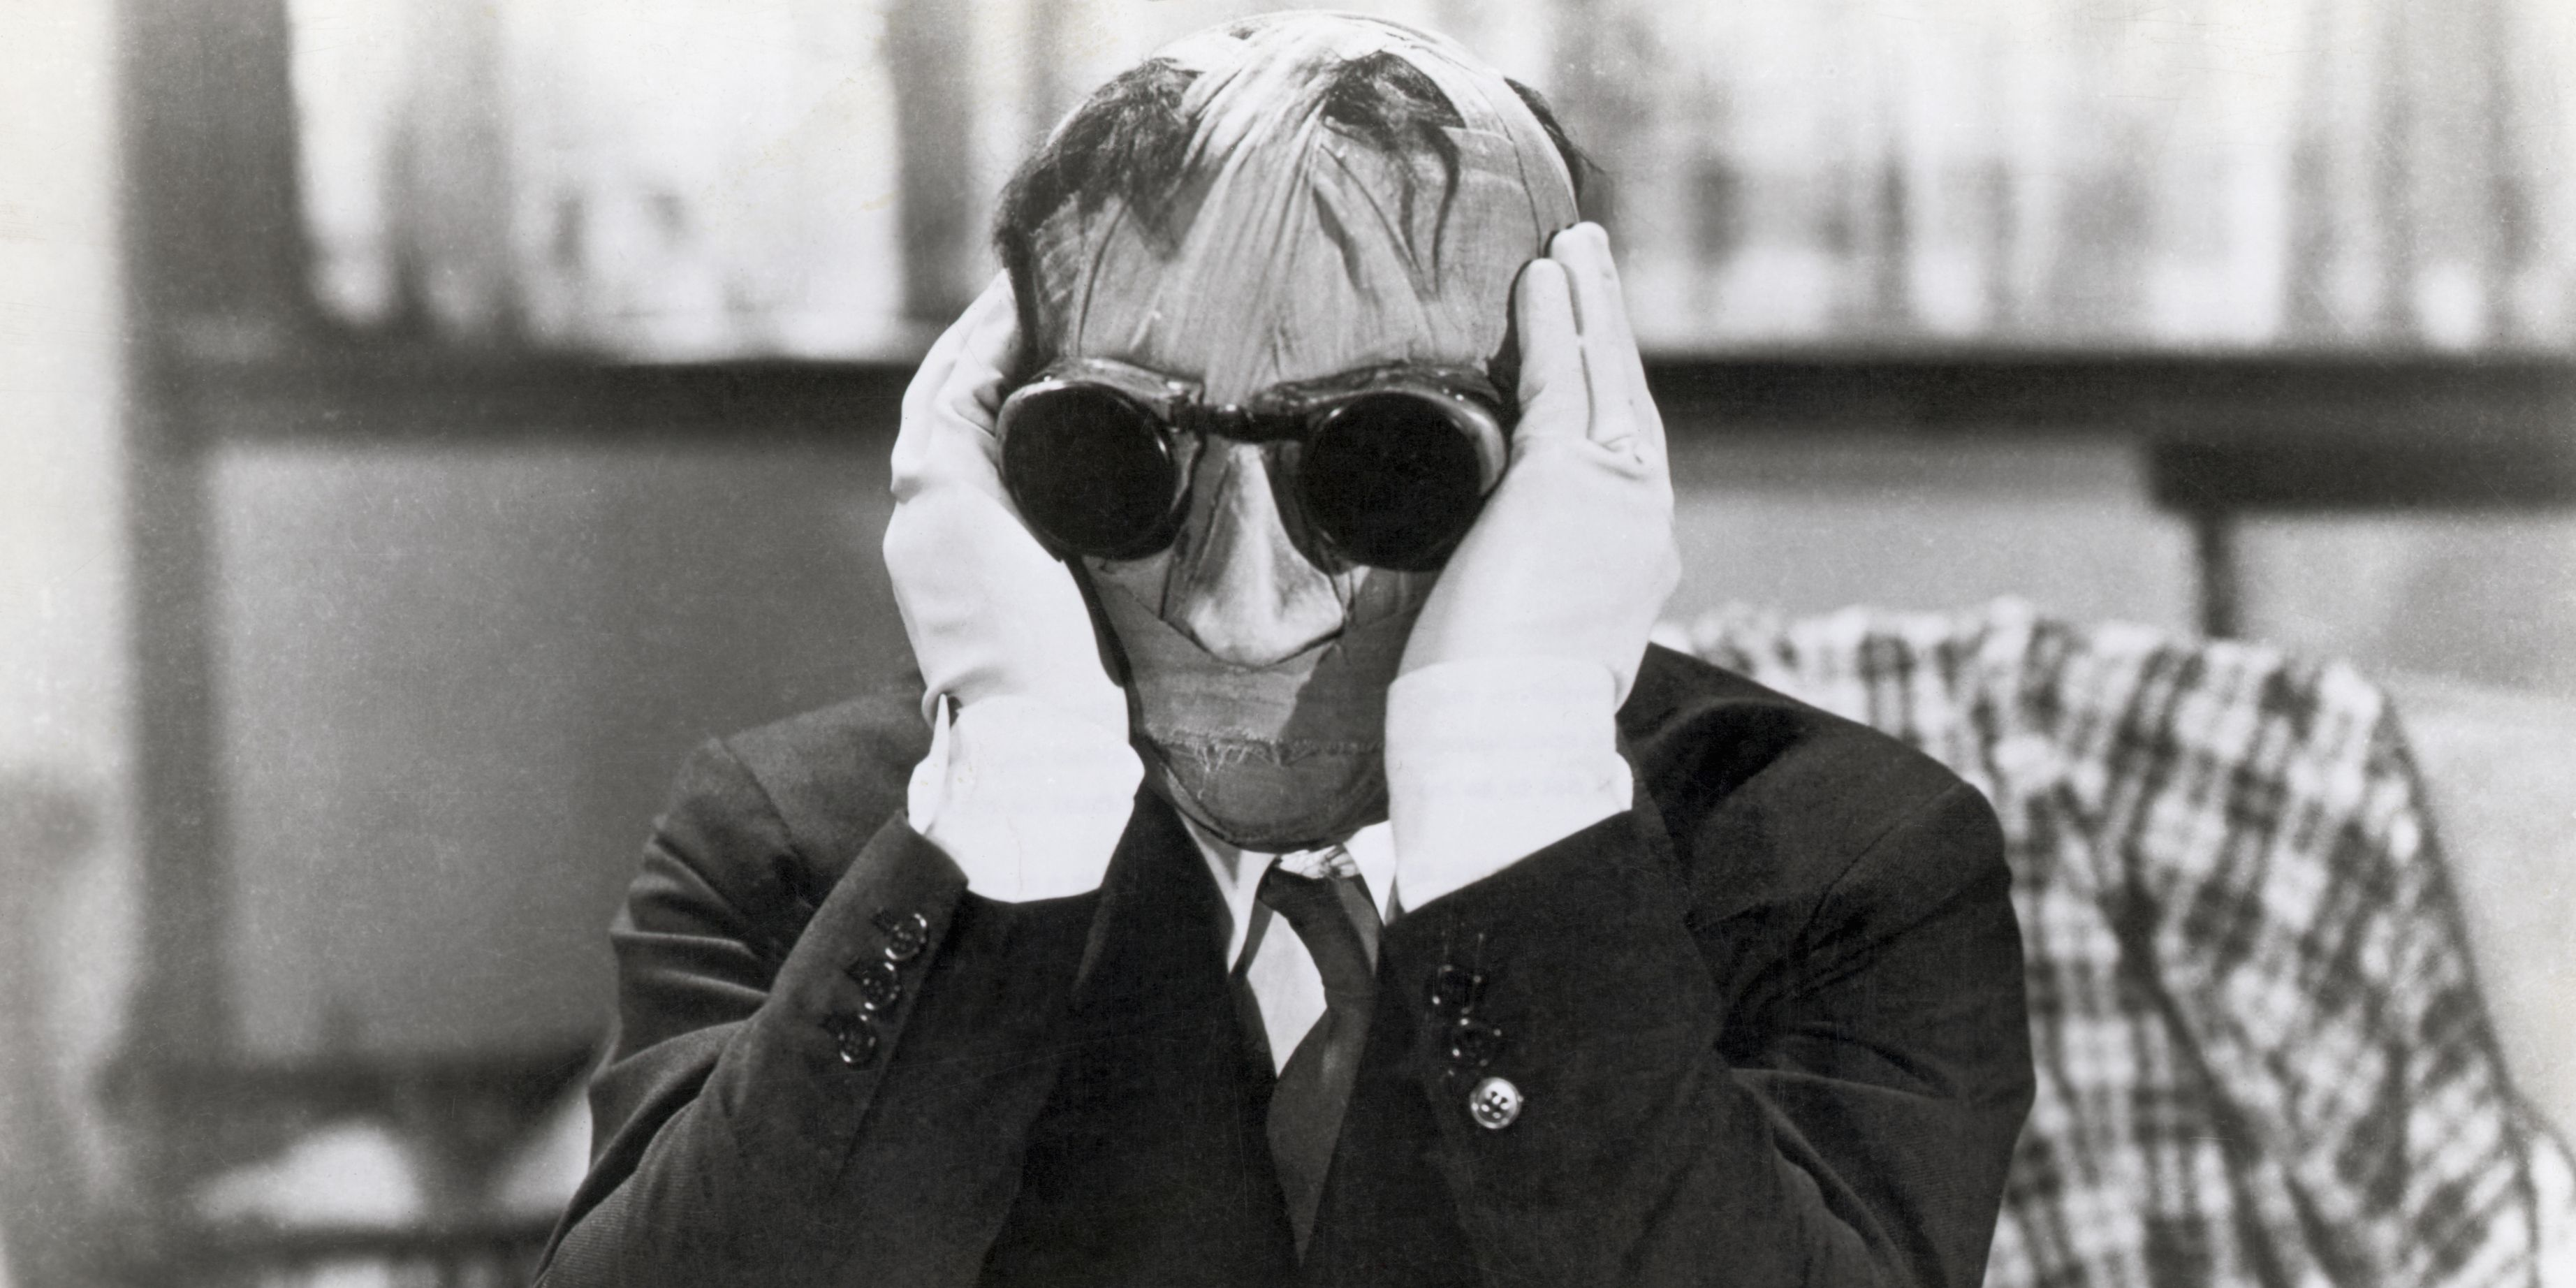 Claude Rains as the Invisible Man